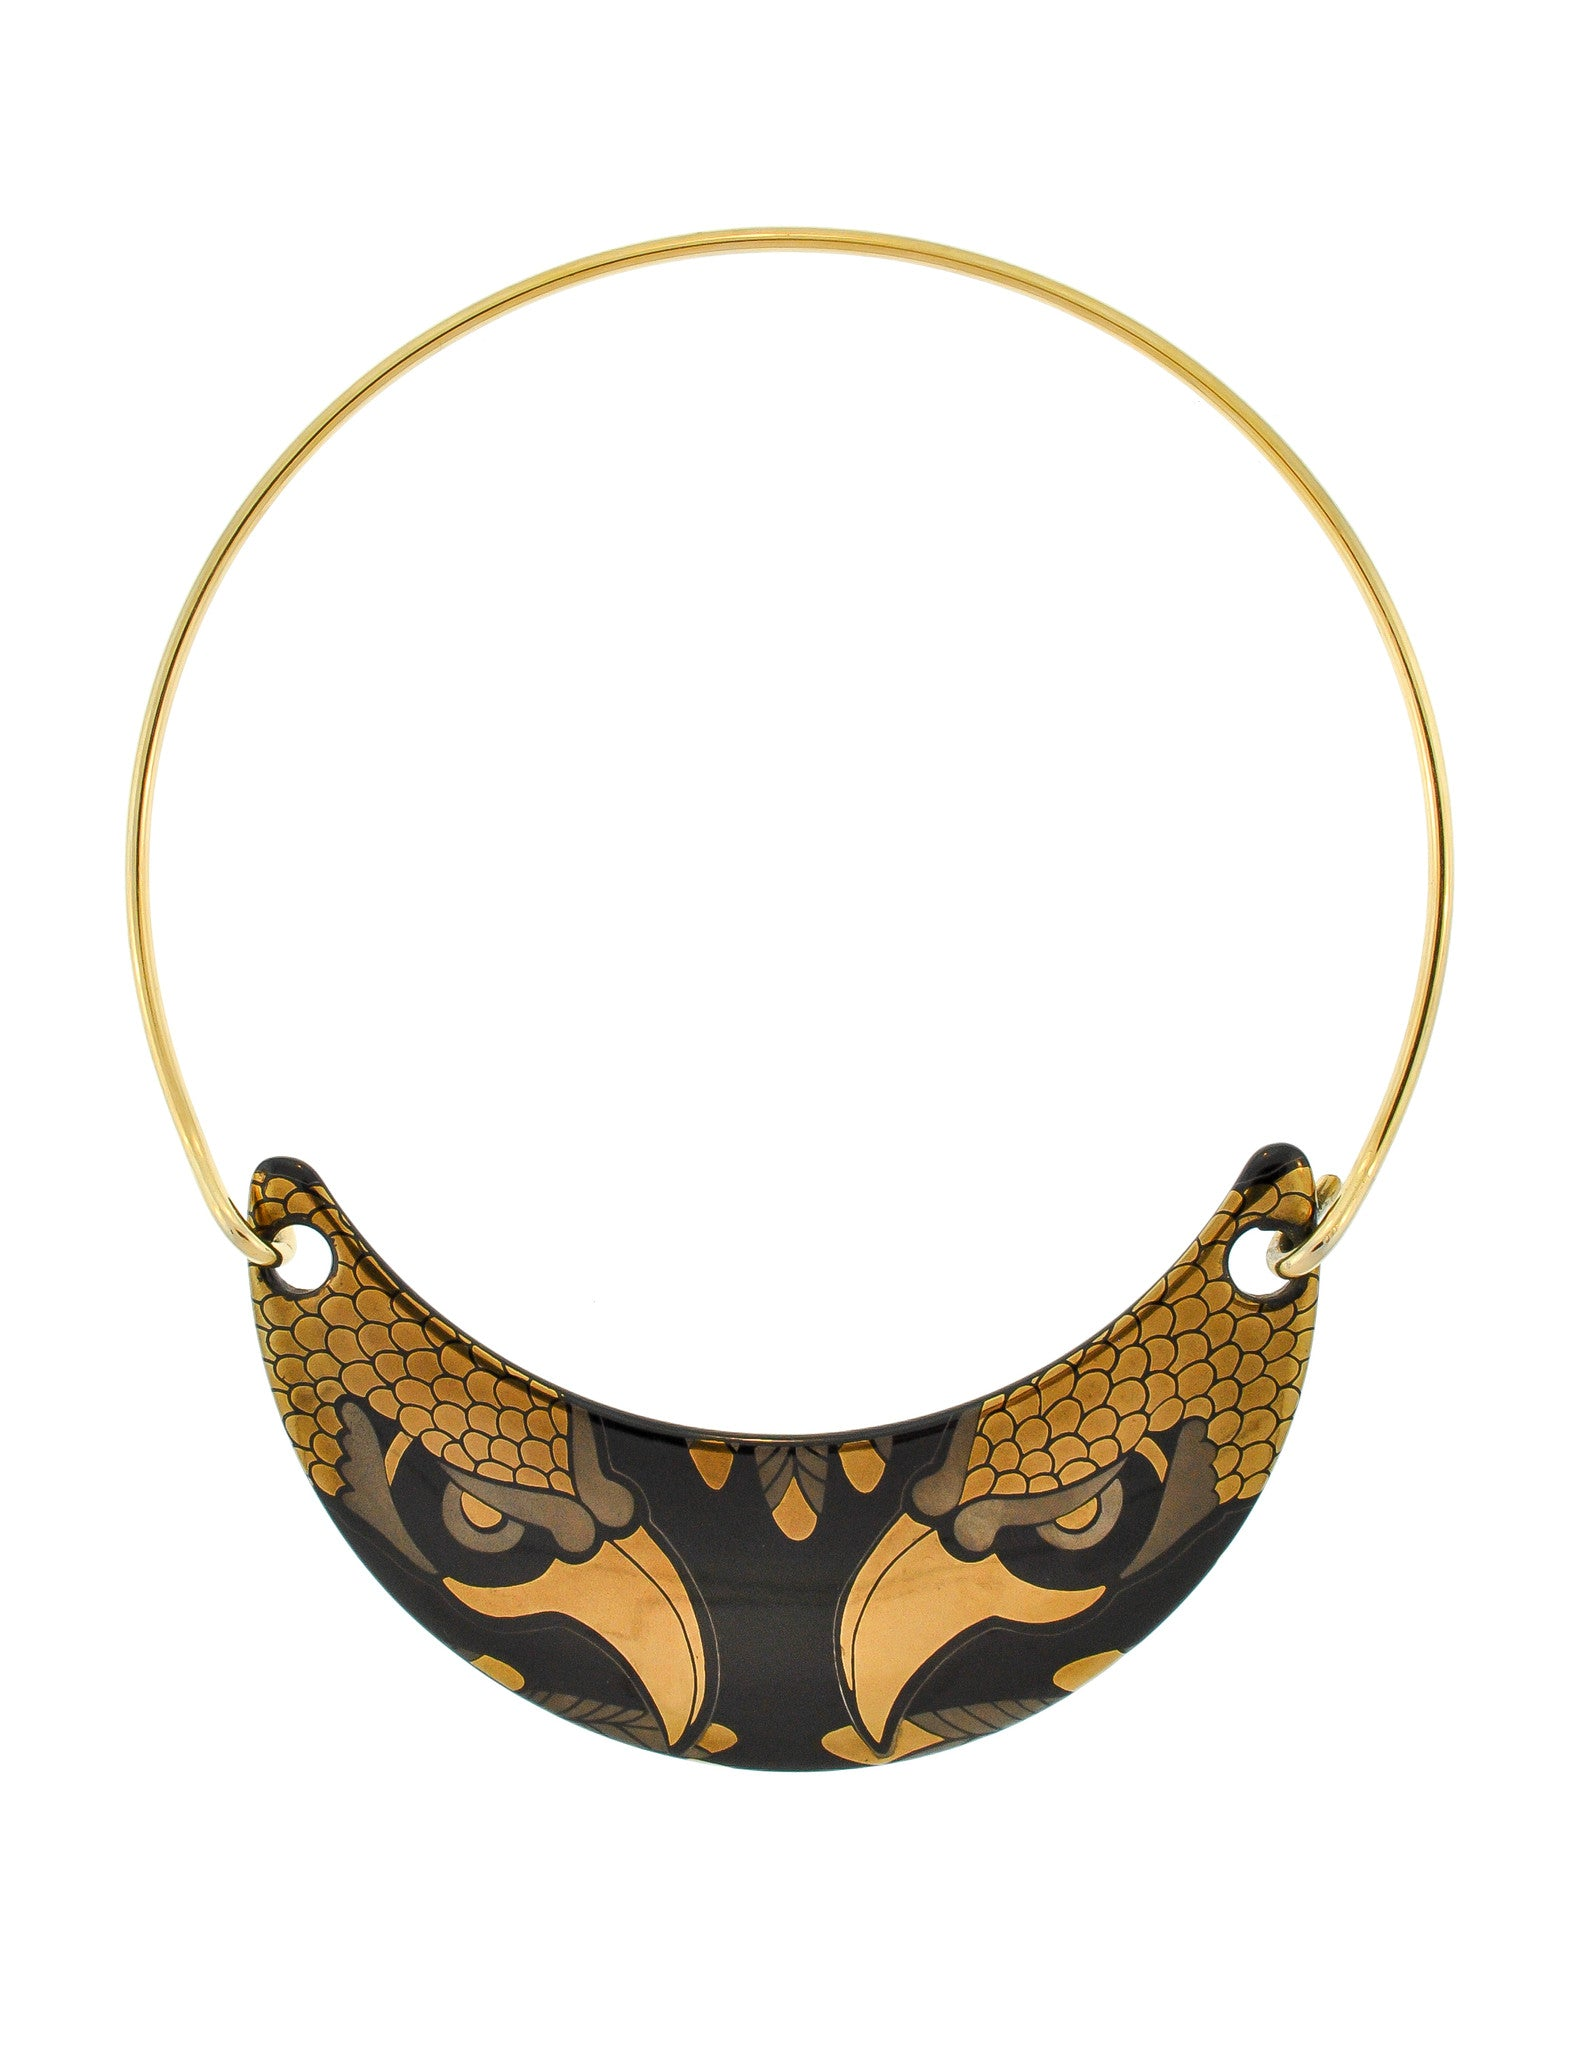 Franco Bastianelli for Laurana Vintage Gold & Black Enamel Hawk Necklace - Amarcord Vintage Fashion  - 1